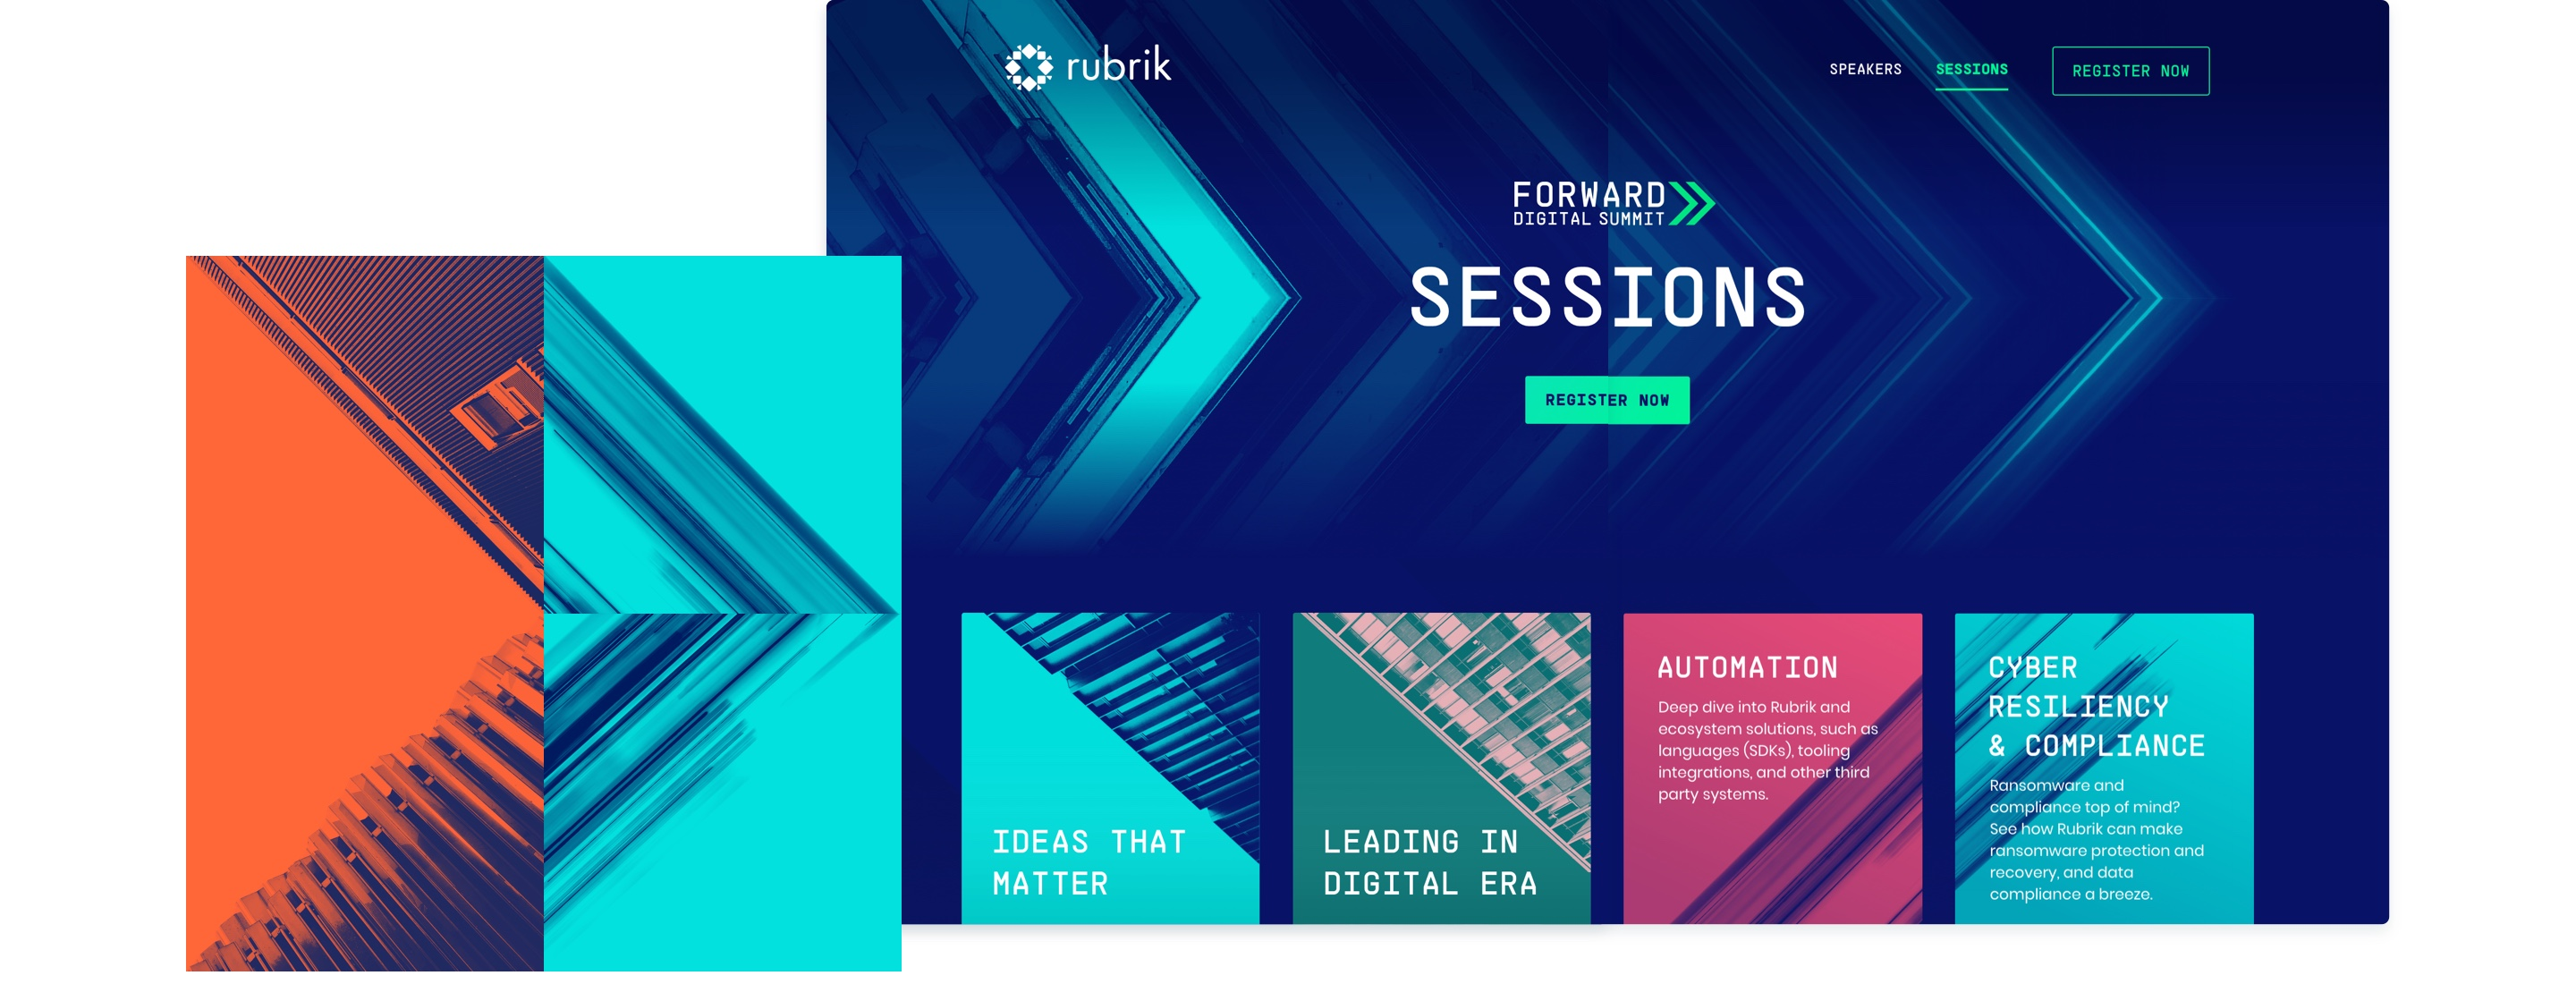 transformation of rubrik forward to rubrik forward digital summit